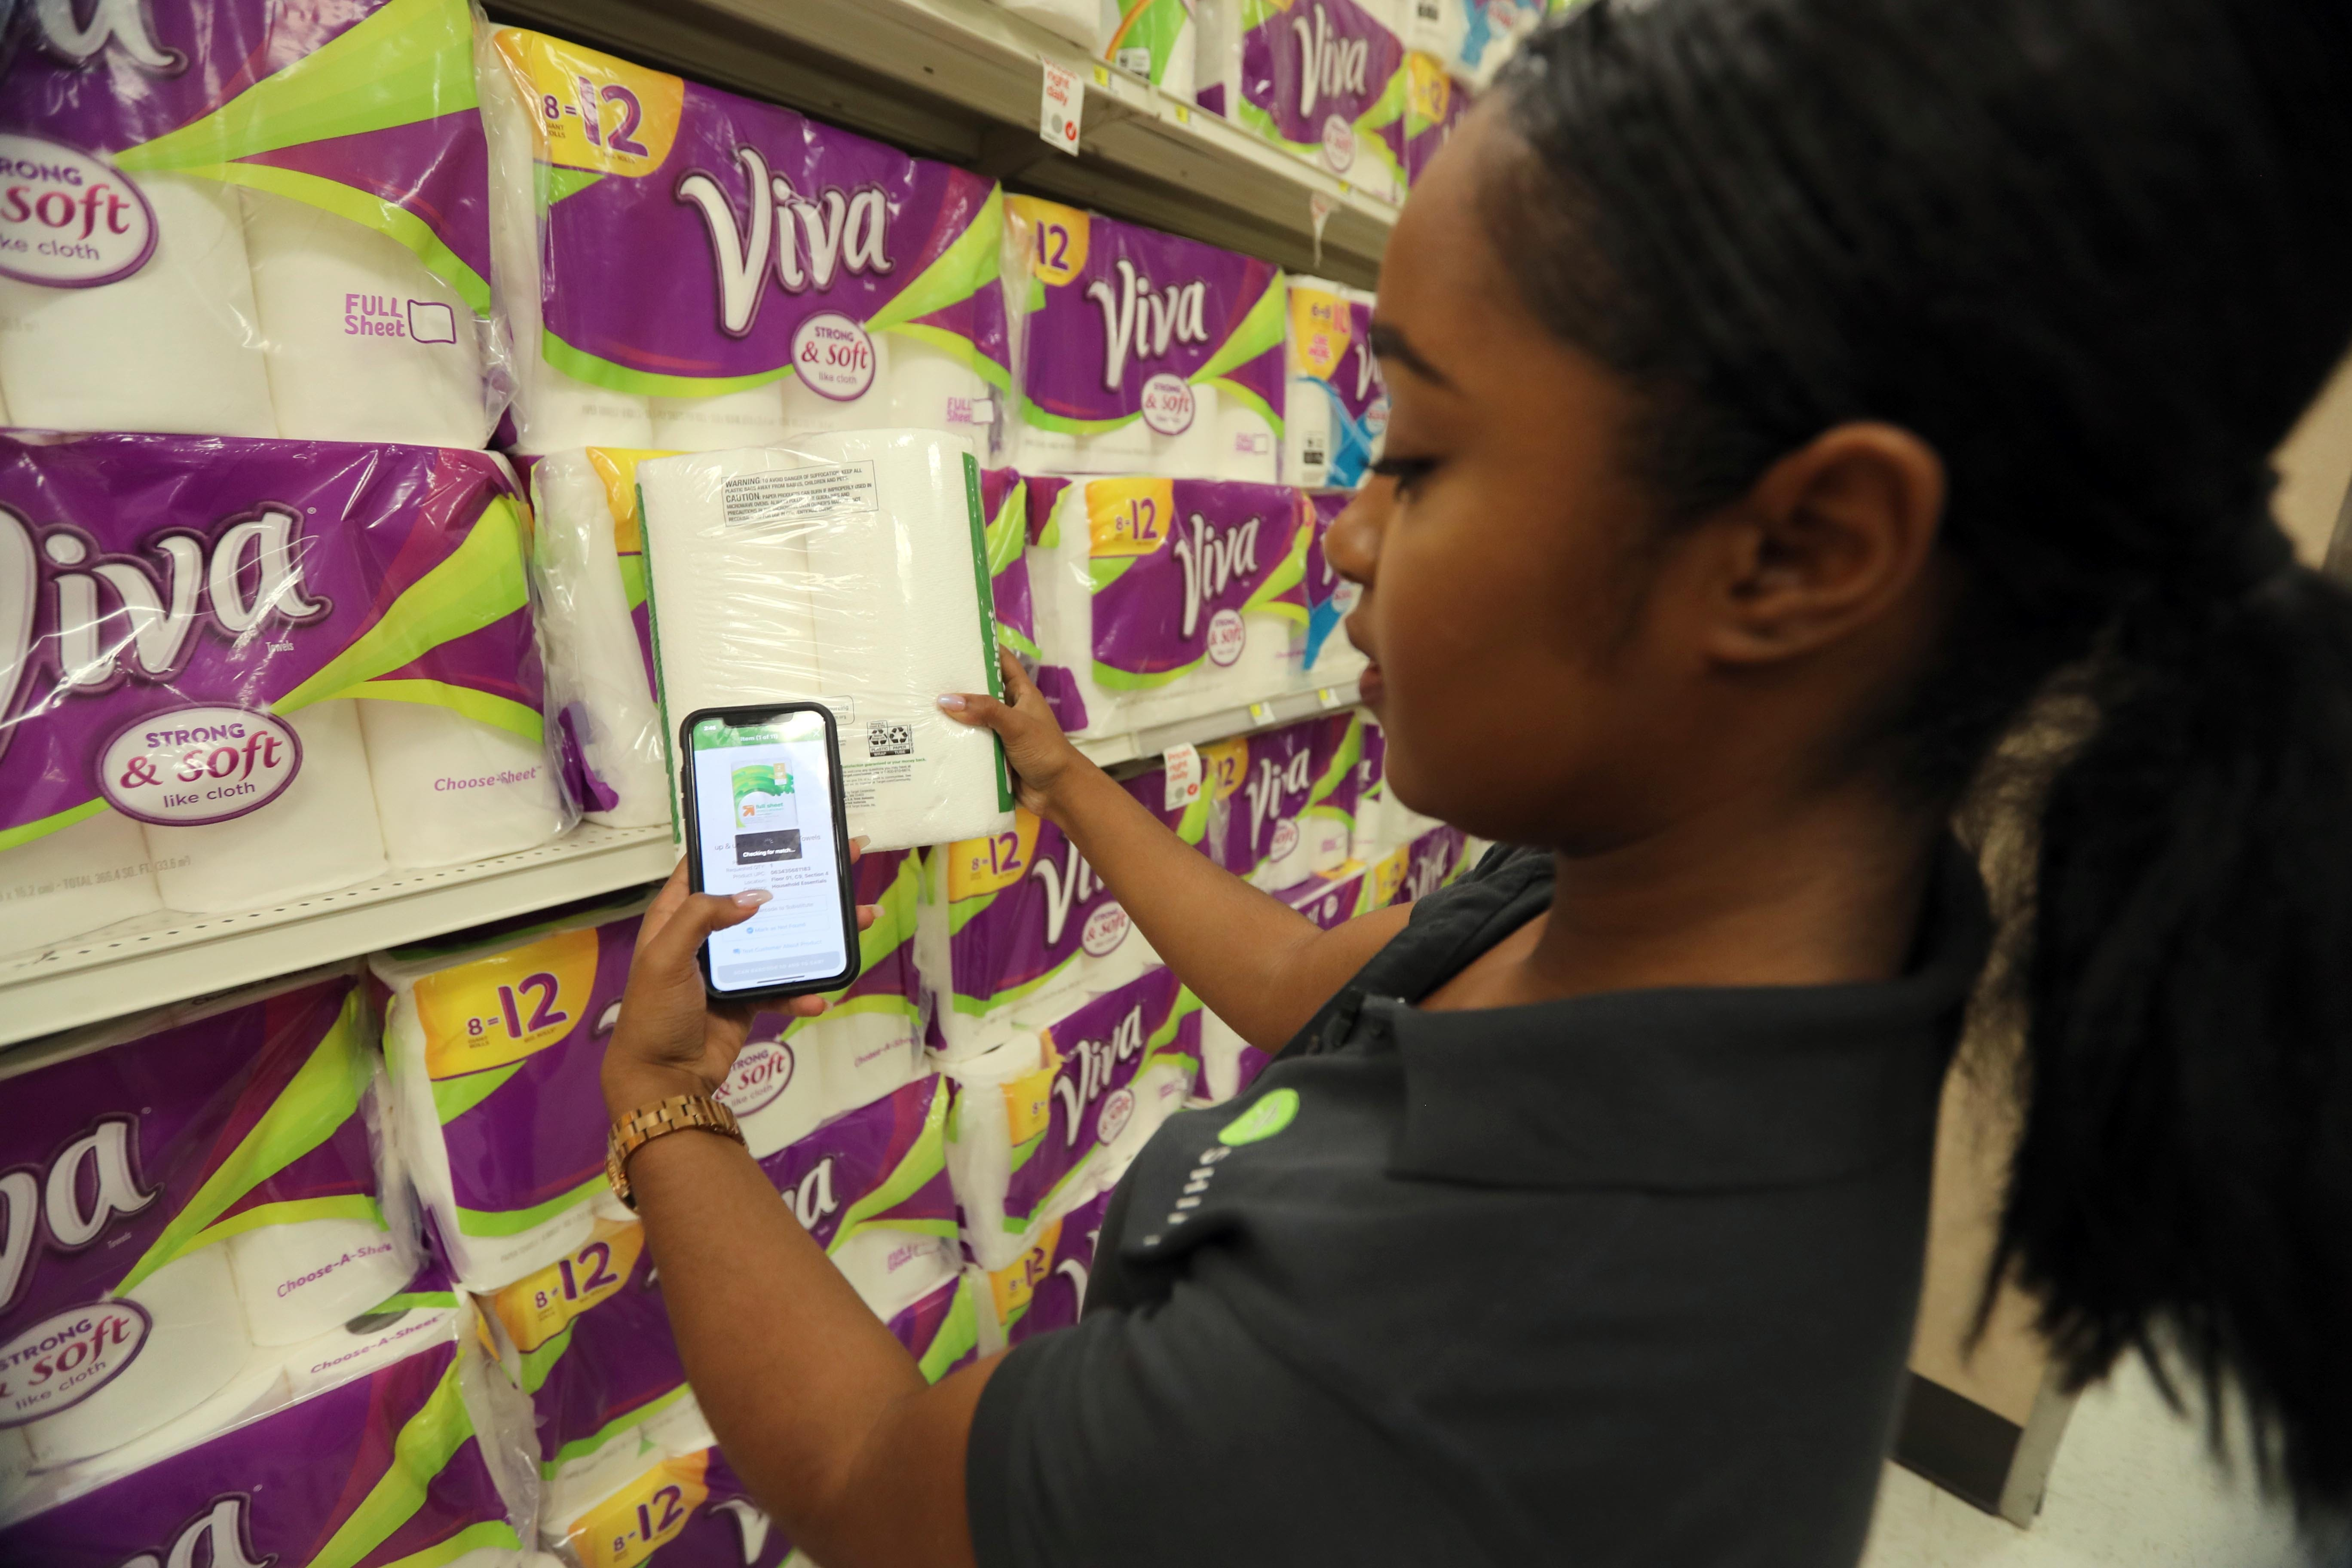 Video: App allows buyers to have someone else do the shopping